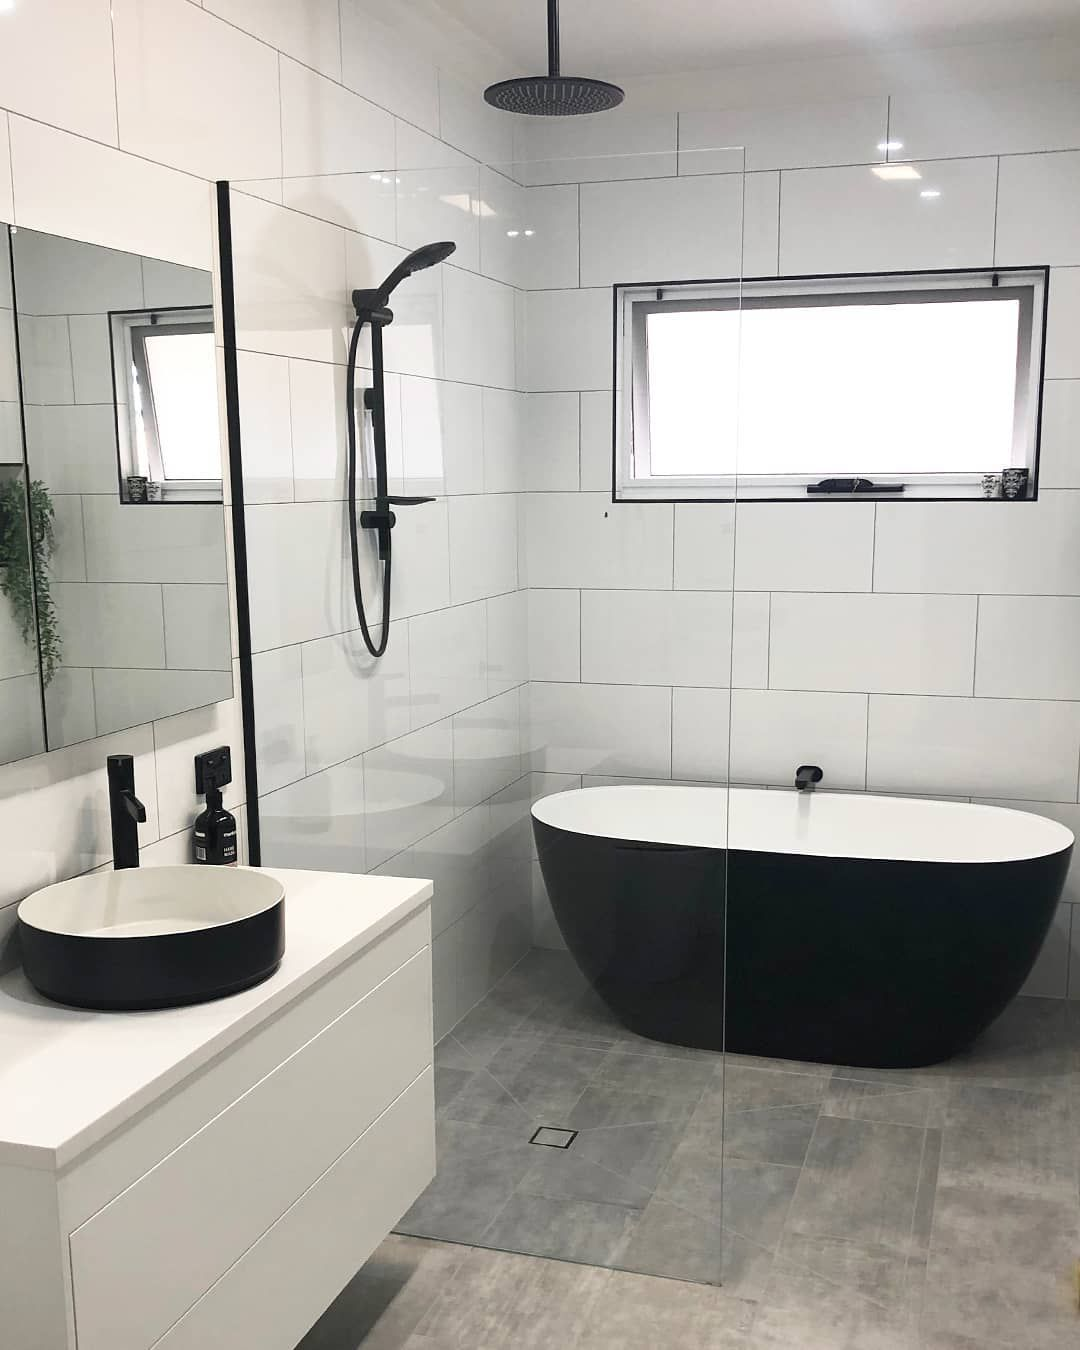 Reece Bathrooms On Instagram Black And White With A Unified Design This Bathroom Shows The Beauty In Simplicity The Striking Two Tone Kado Lux Petite Bath A